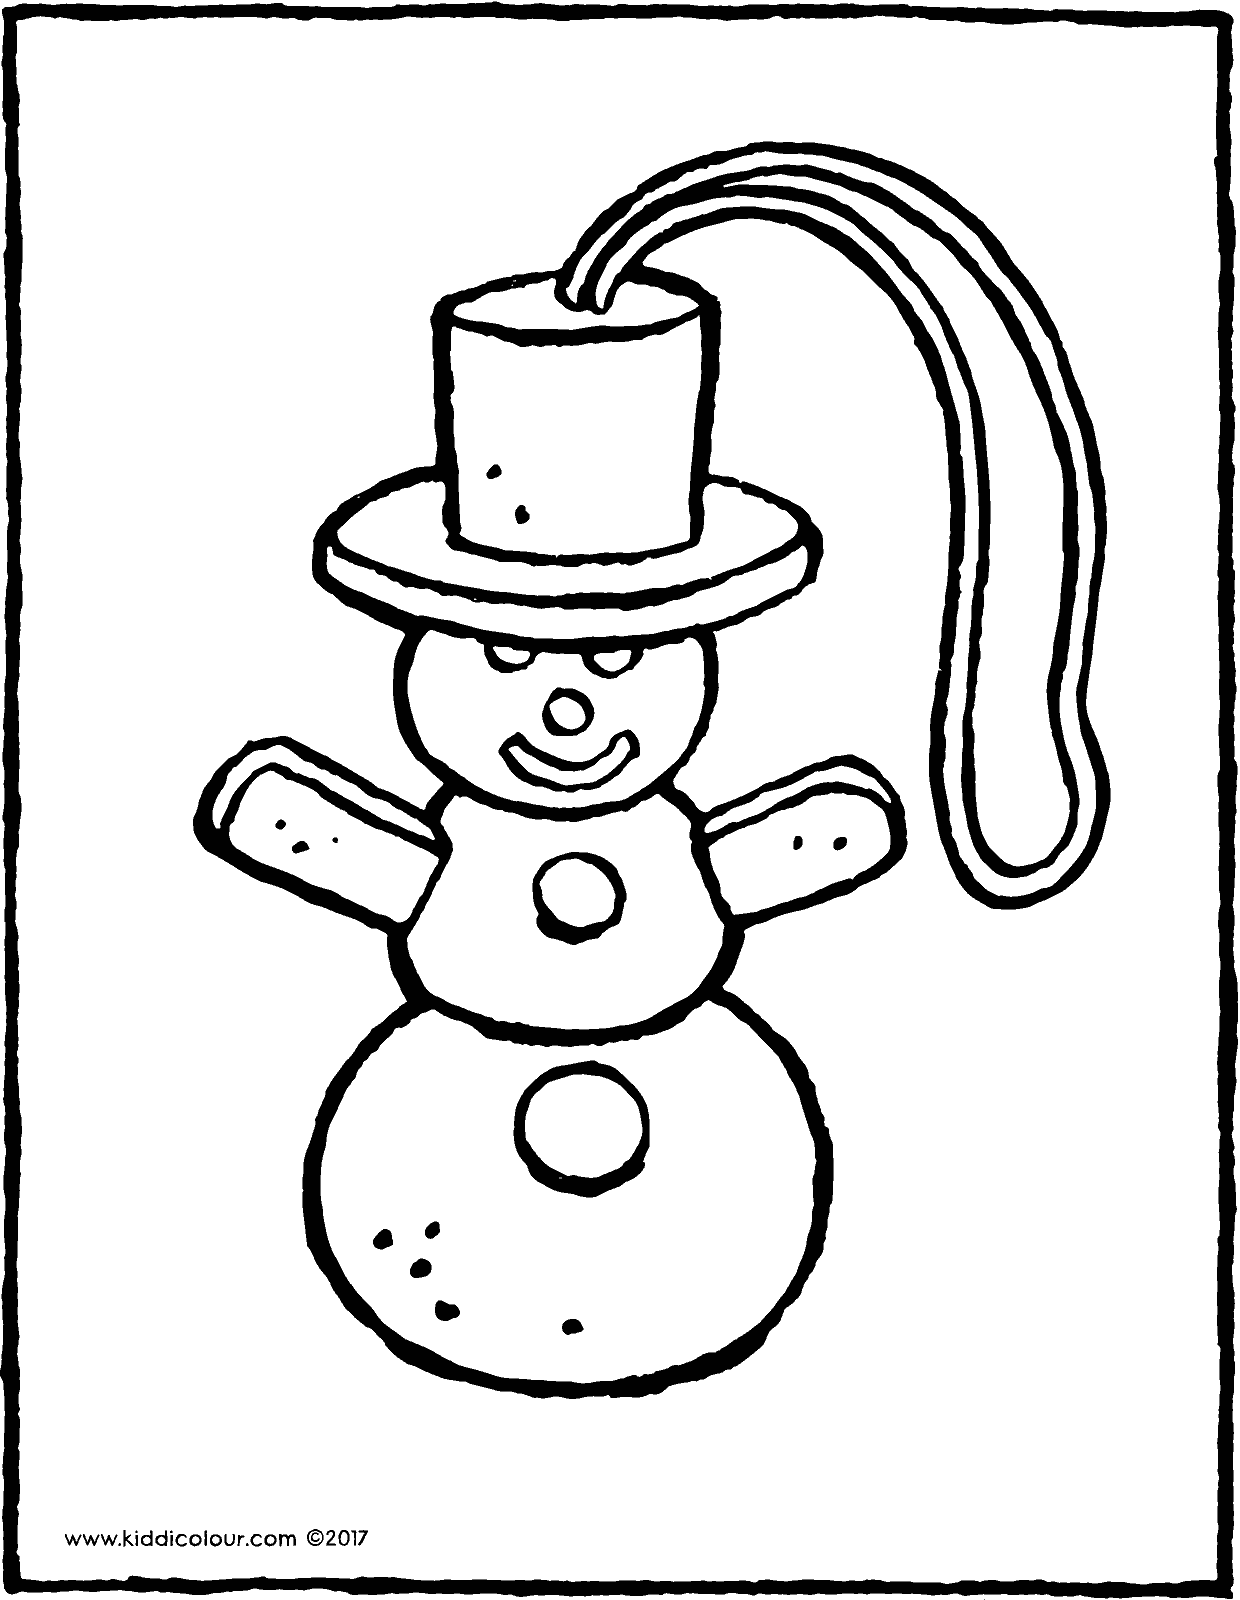 snowman Christmas decoration colouring page page drawing picture 01V